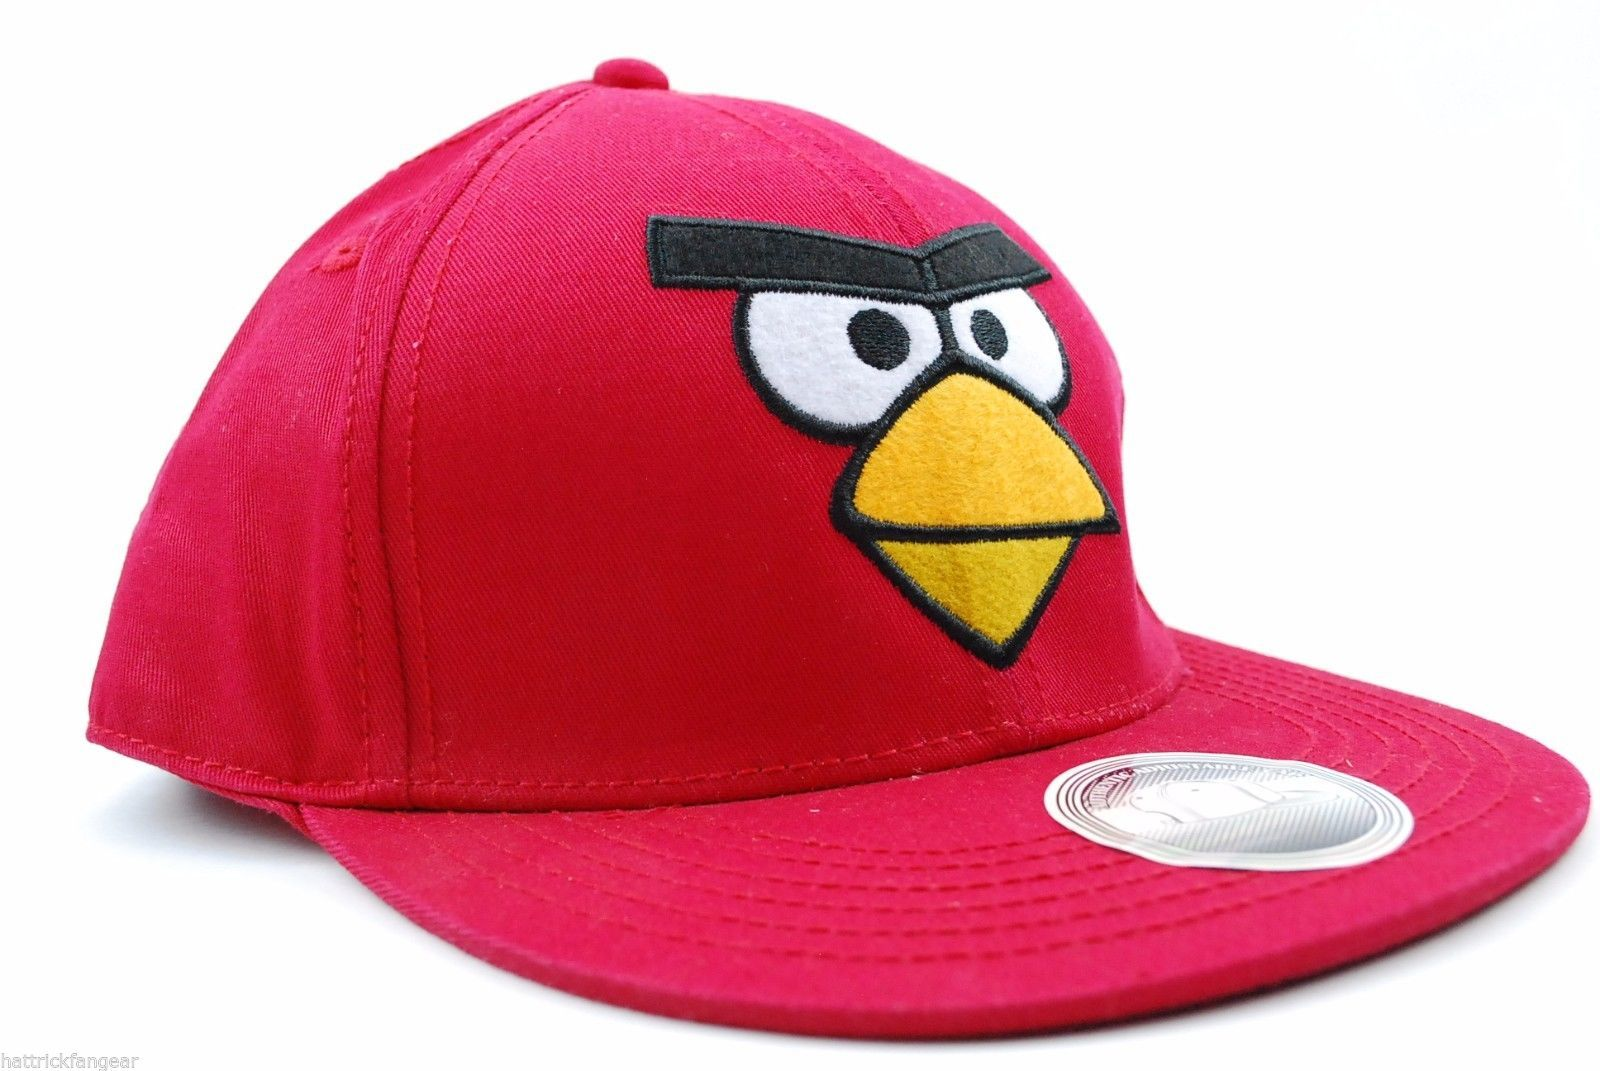 CONCEPT ONE ANGRY BIRDS VIDEO GAME SNAP BACK FLAT BILL CAP/HAT - RED - OSFM